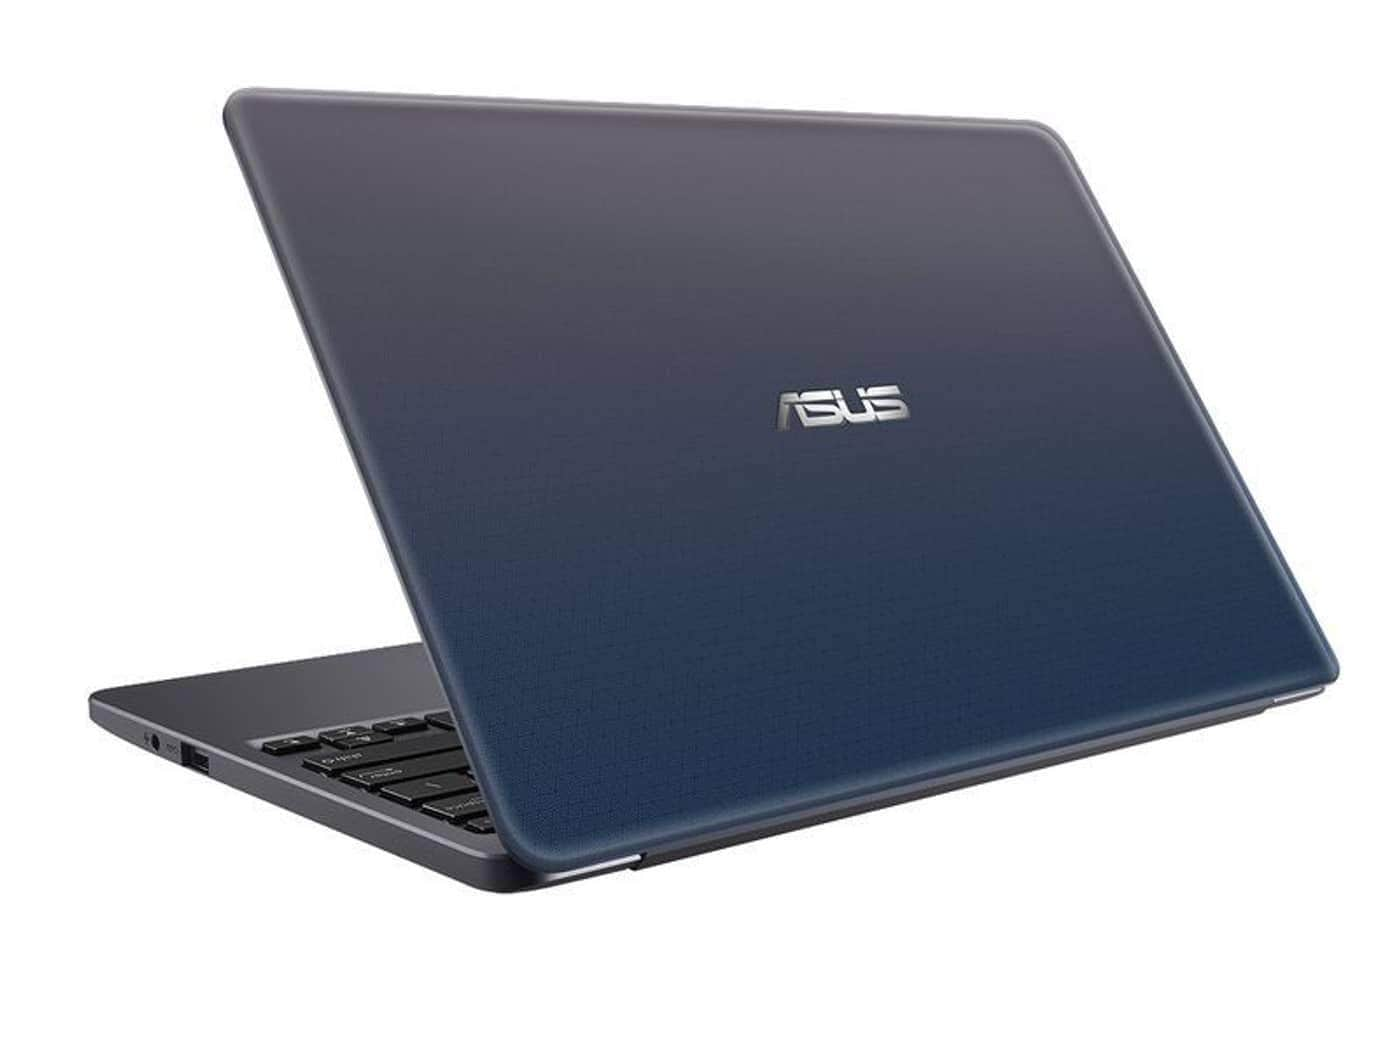 Asus E203 E203MAH-FD005T 11.6-inch Laptop (Celeron N4000/4GB/500GB/Windows 10/Integrated Graphics) Star Grey